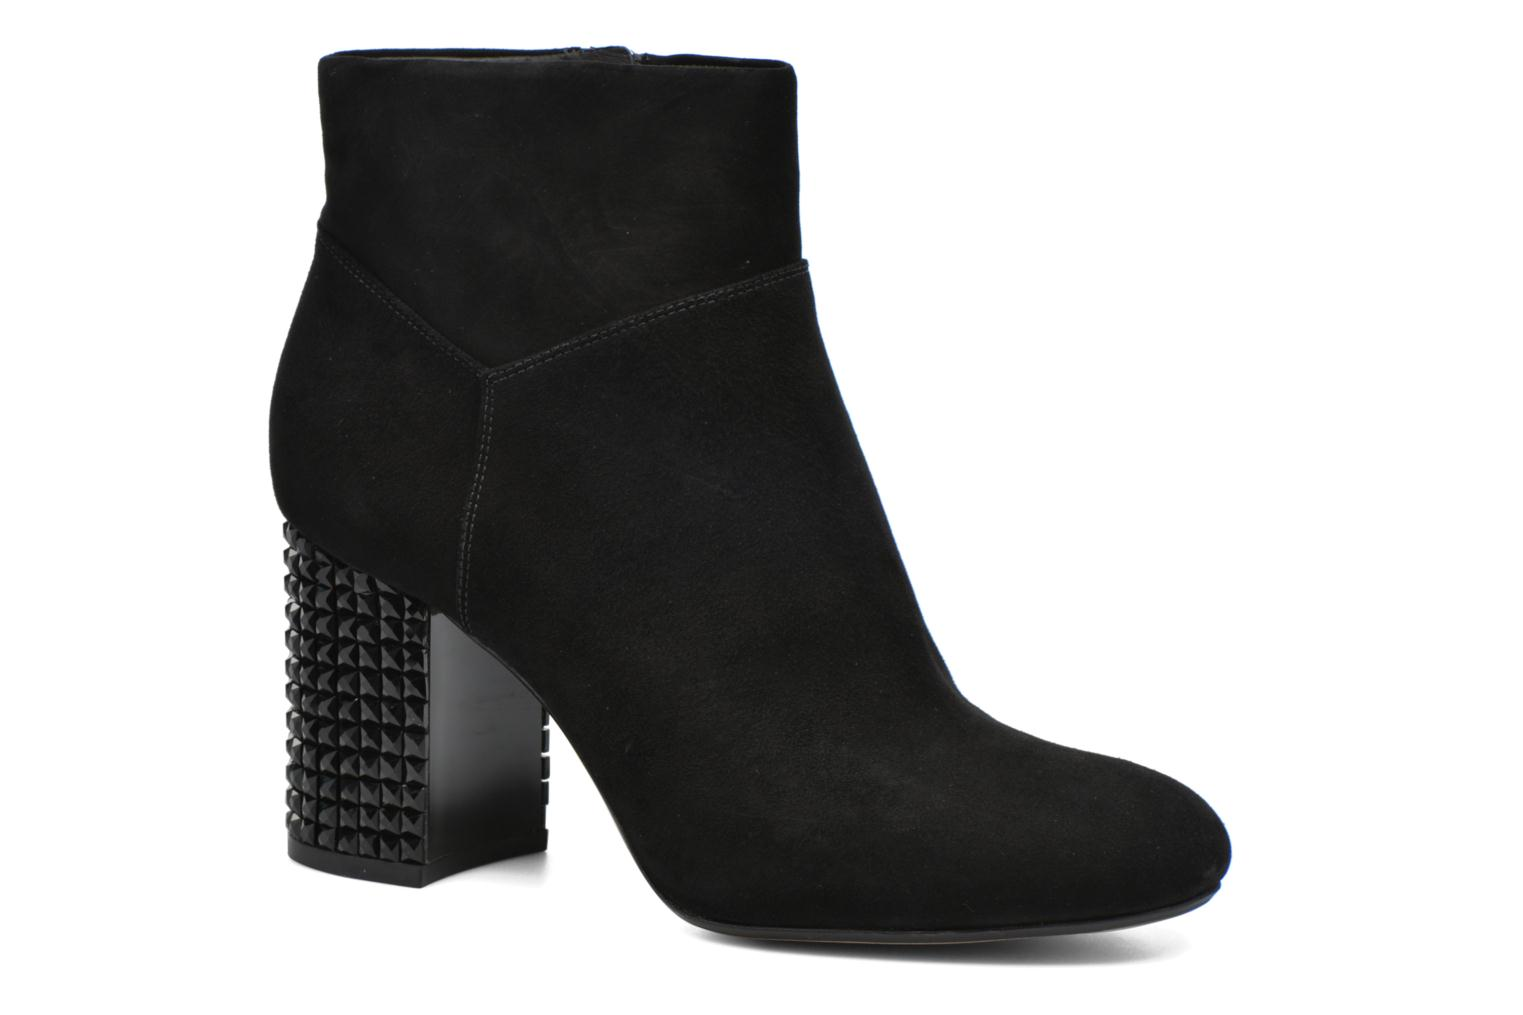 Michael Kors Bottines Arabella Noir kmNtgZn